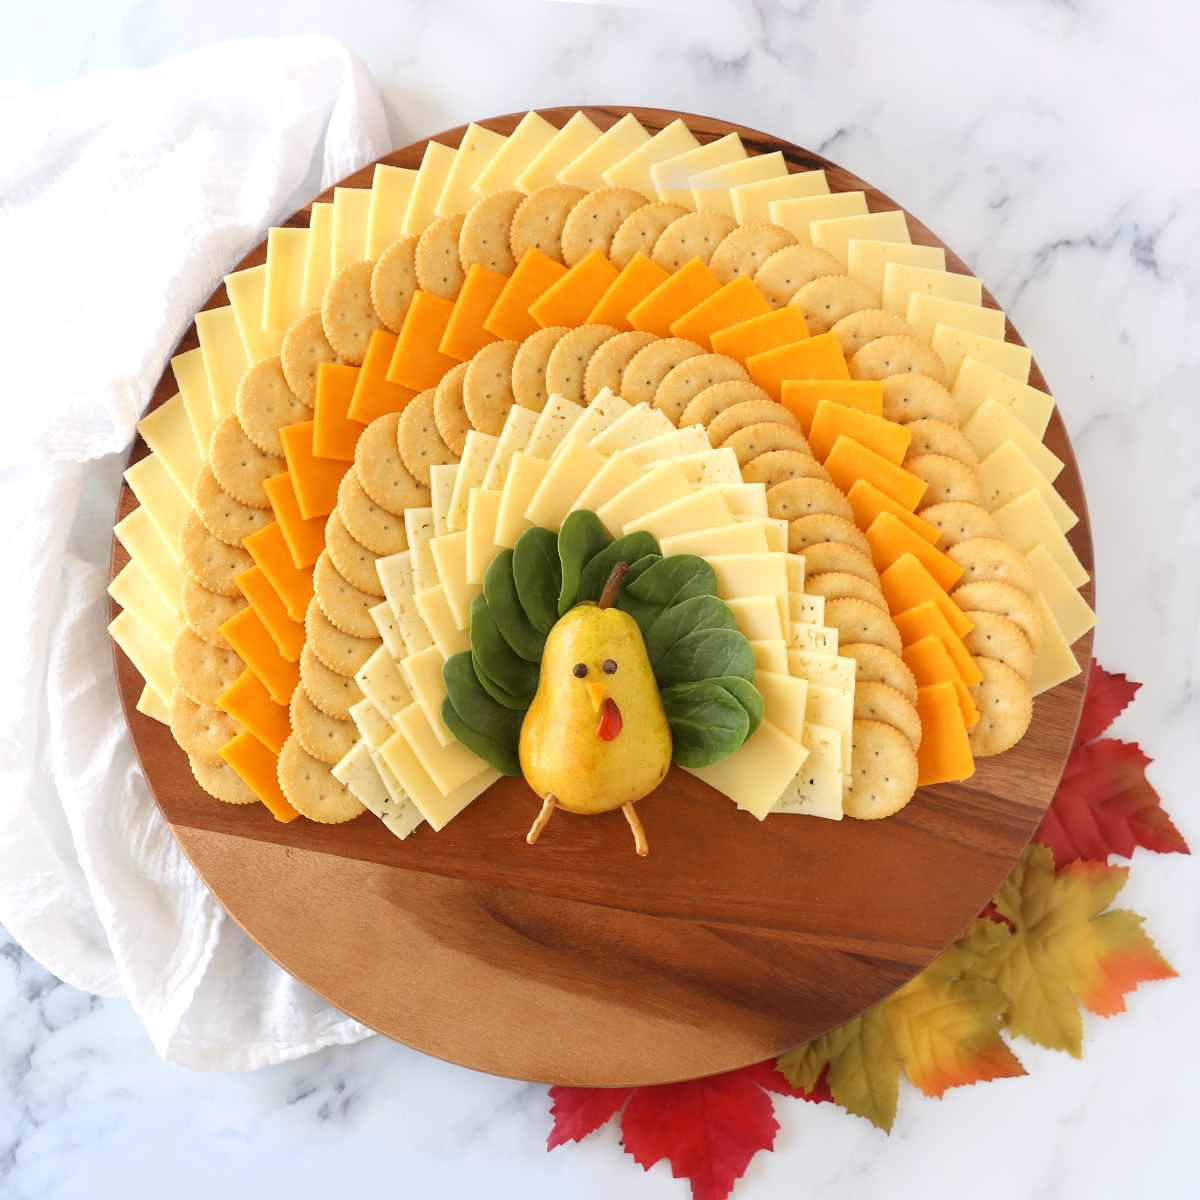 Cheese board shaped like a turkey for Thanksgiving